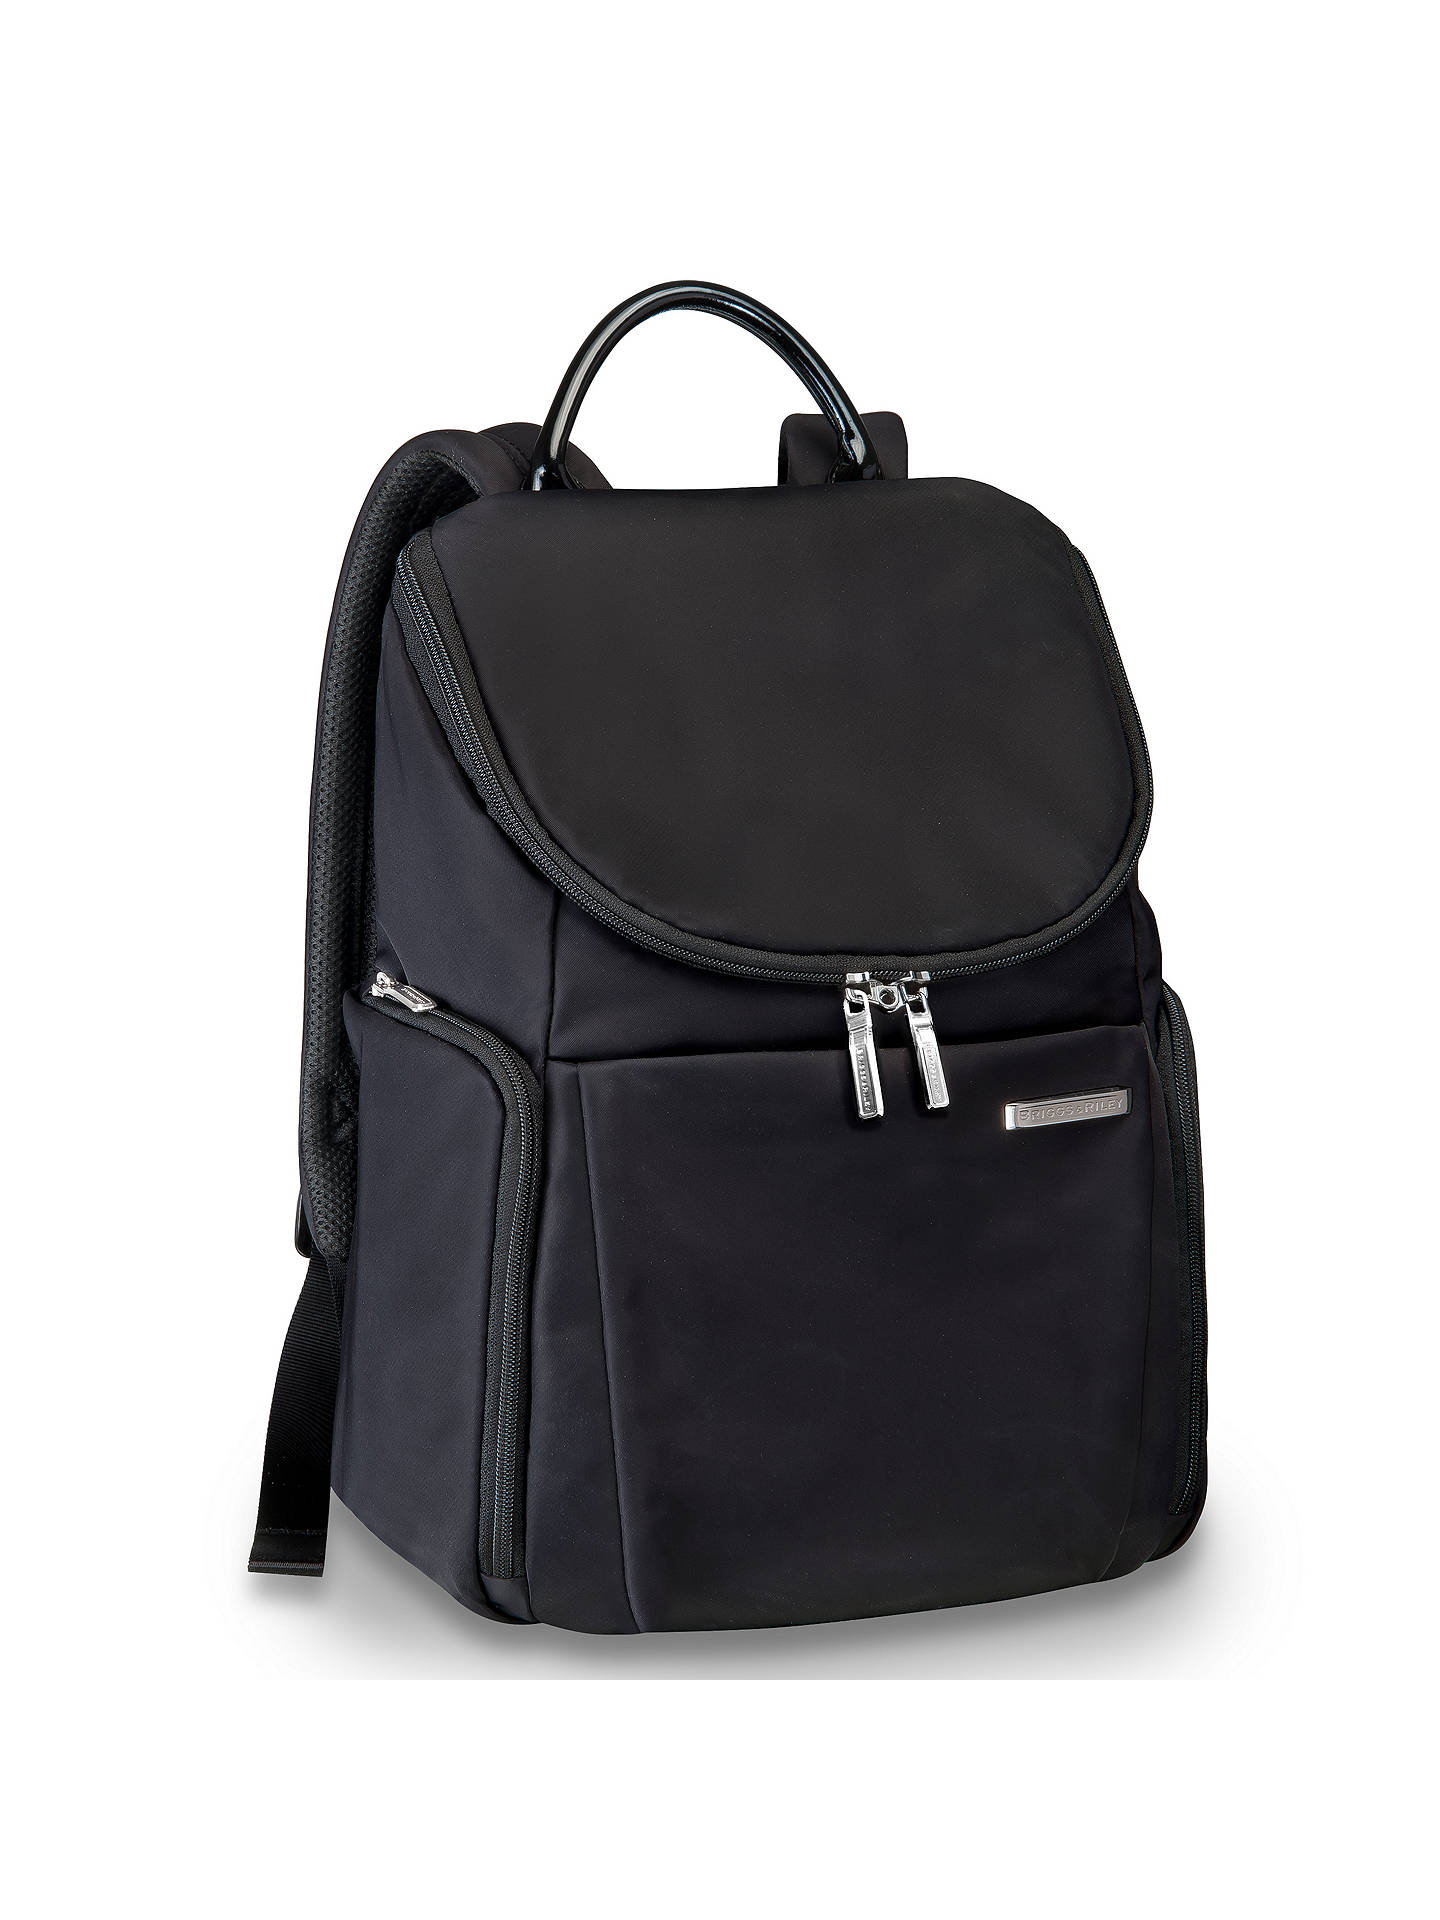 Buy Briggs & Riley Sympatico Backpack, Onyx Online at johnlewis.com